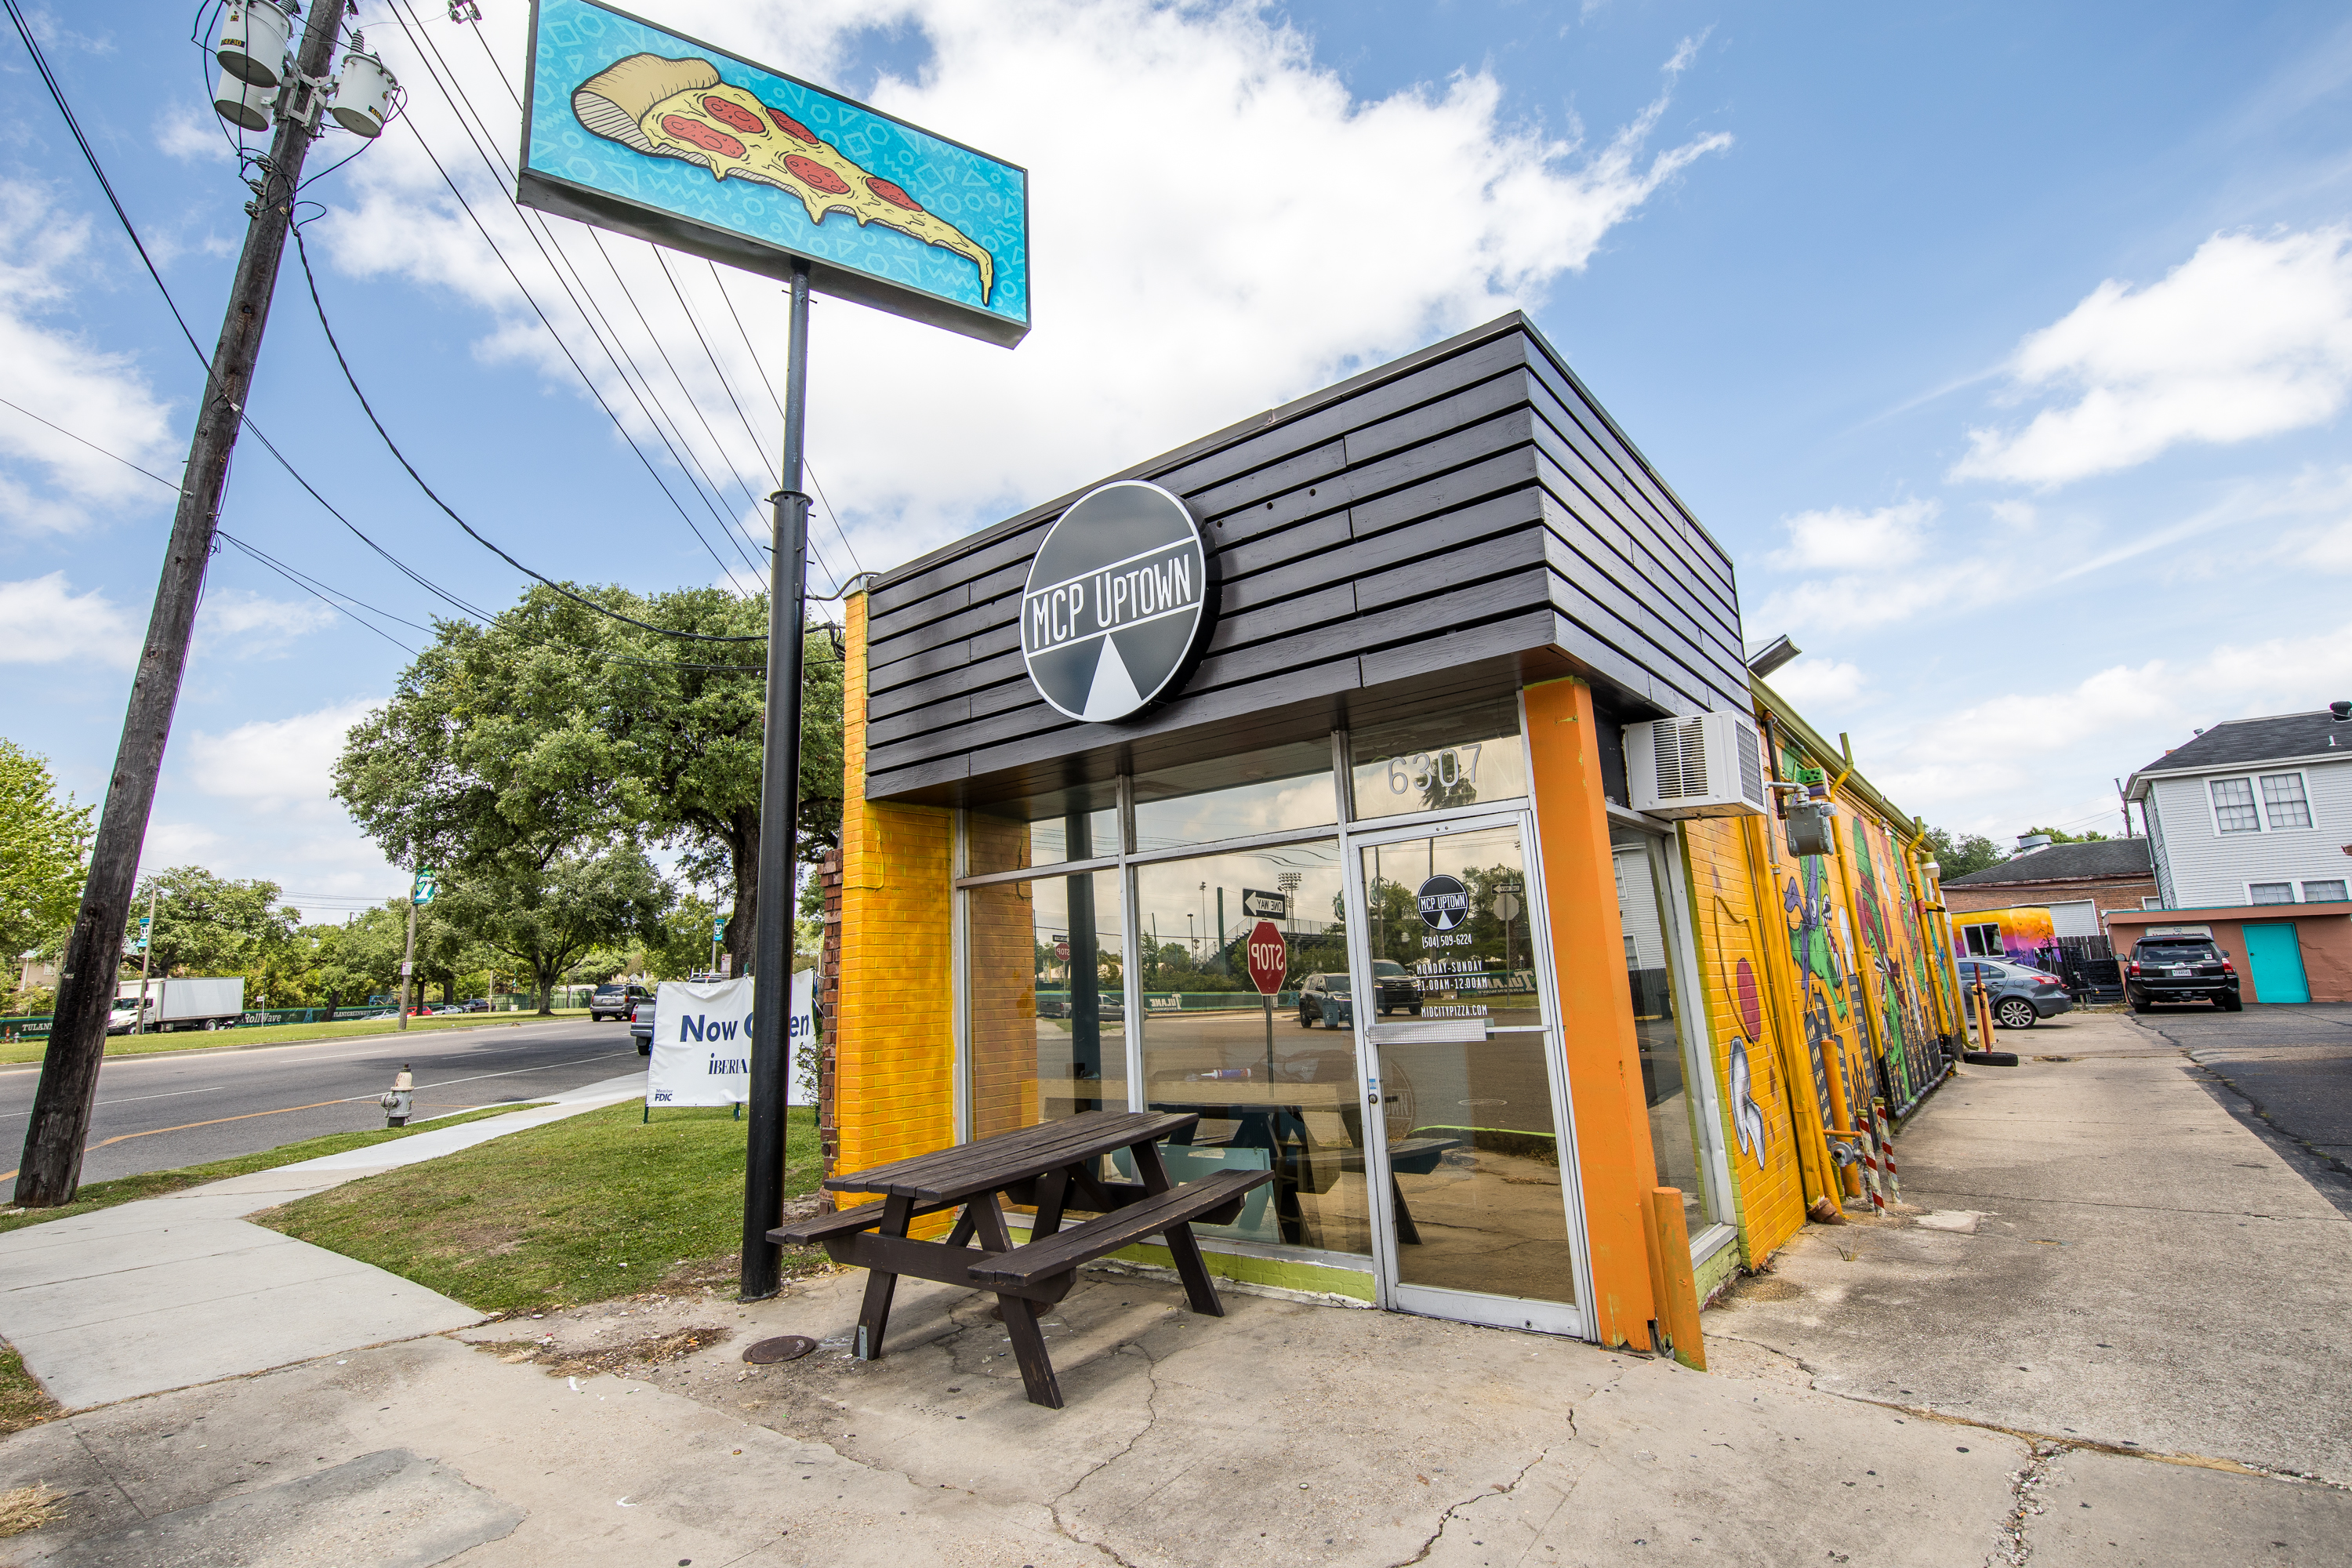 take a first look at mcp uptown a new pizza spot on claiborne eater new orleans. Black Bedroom Furniture Sets. Home Design Ideas